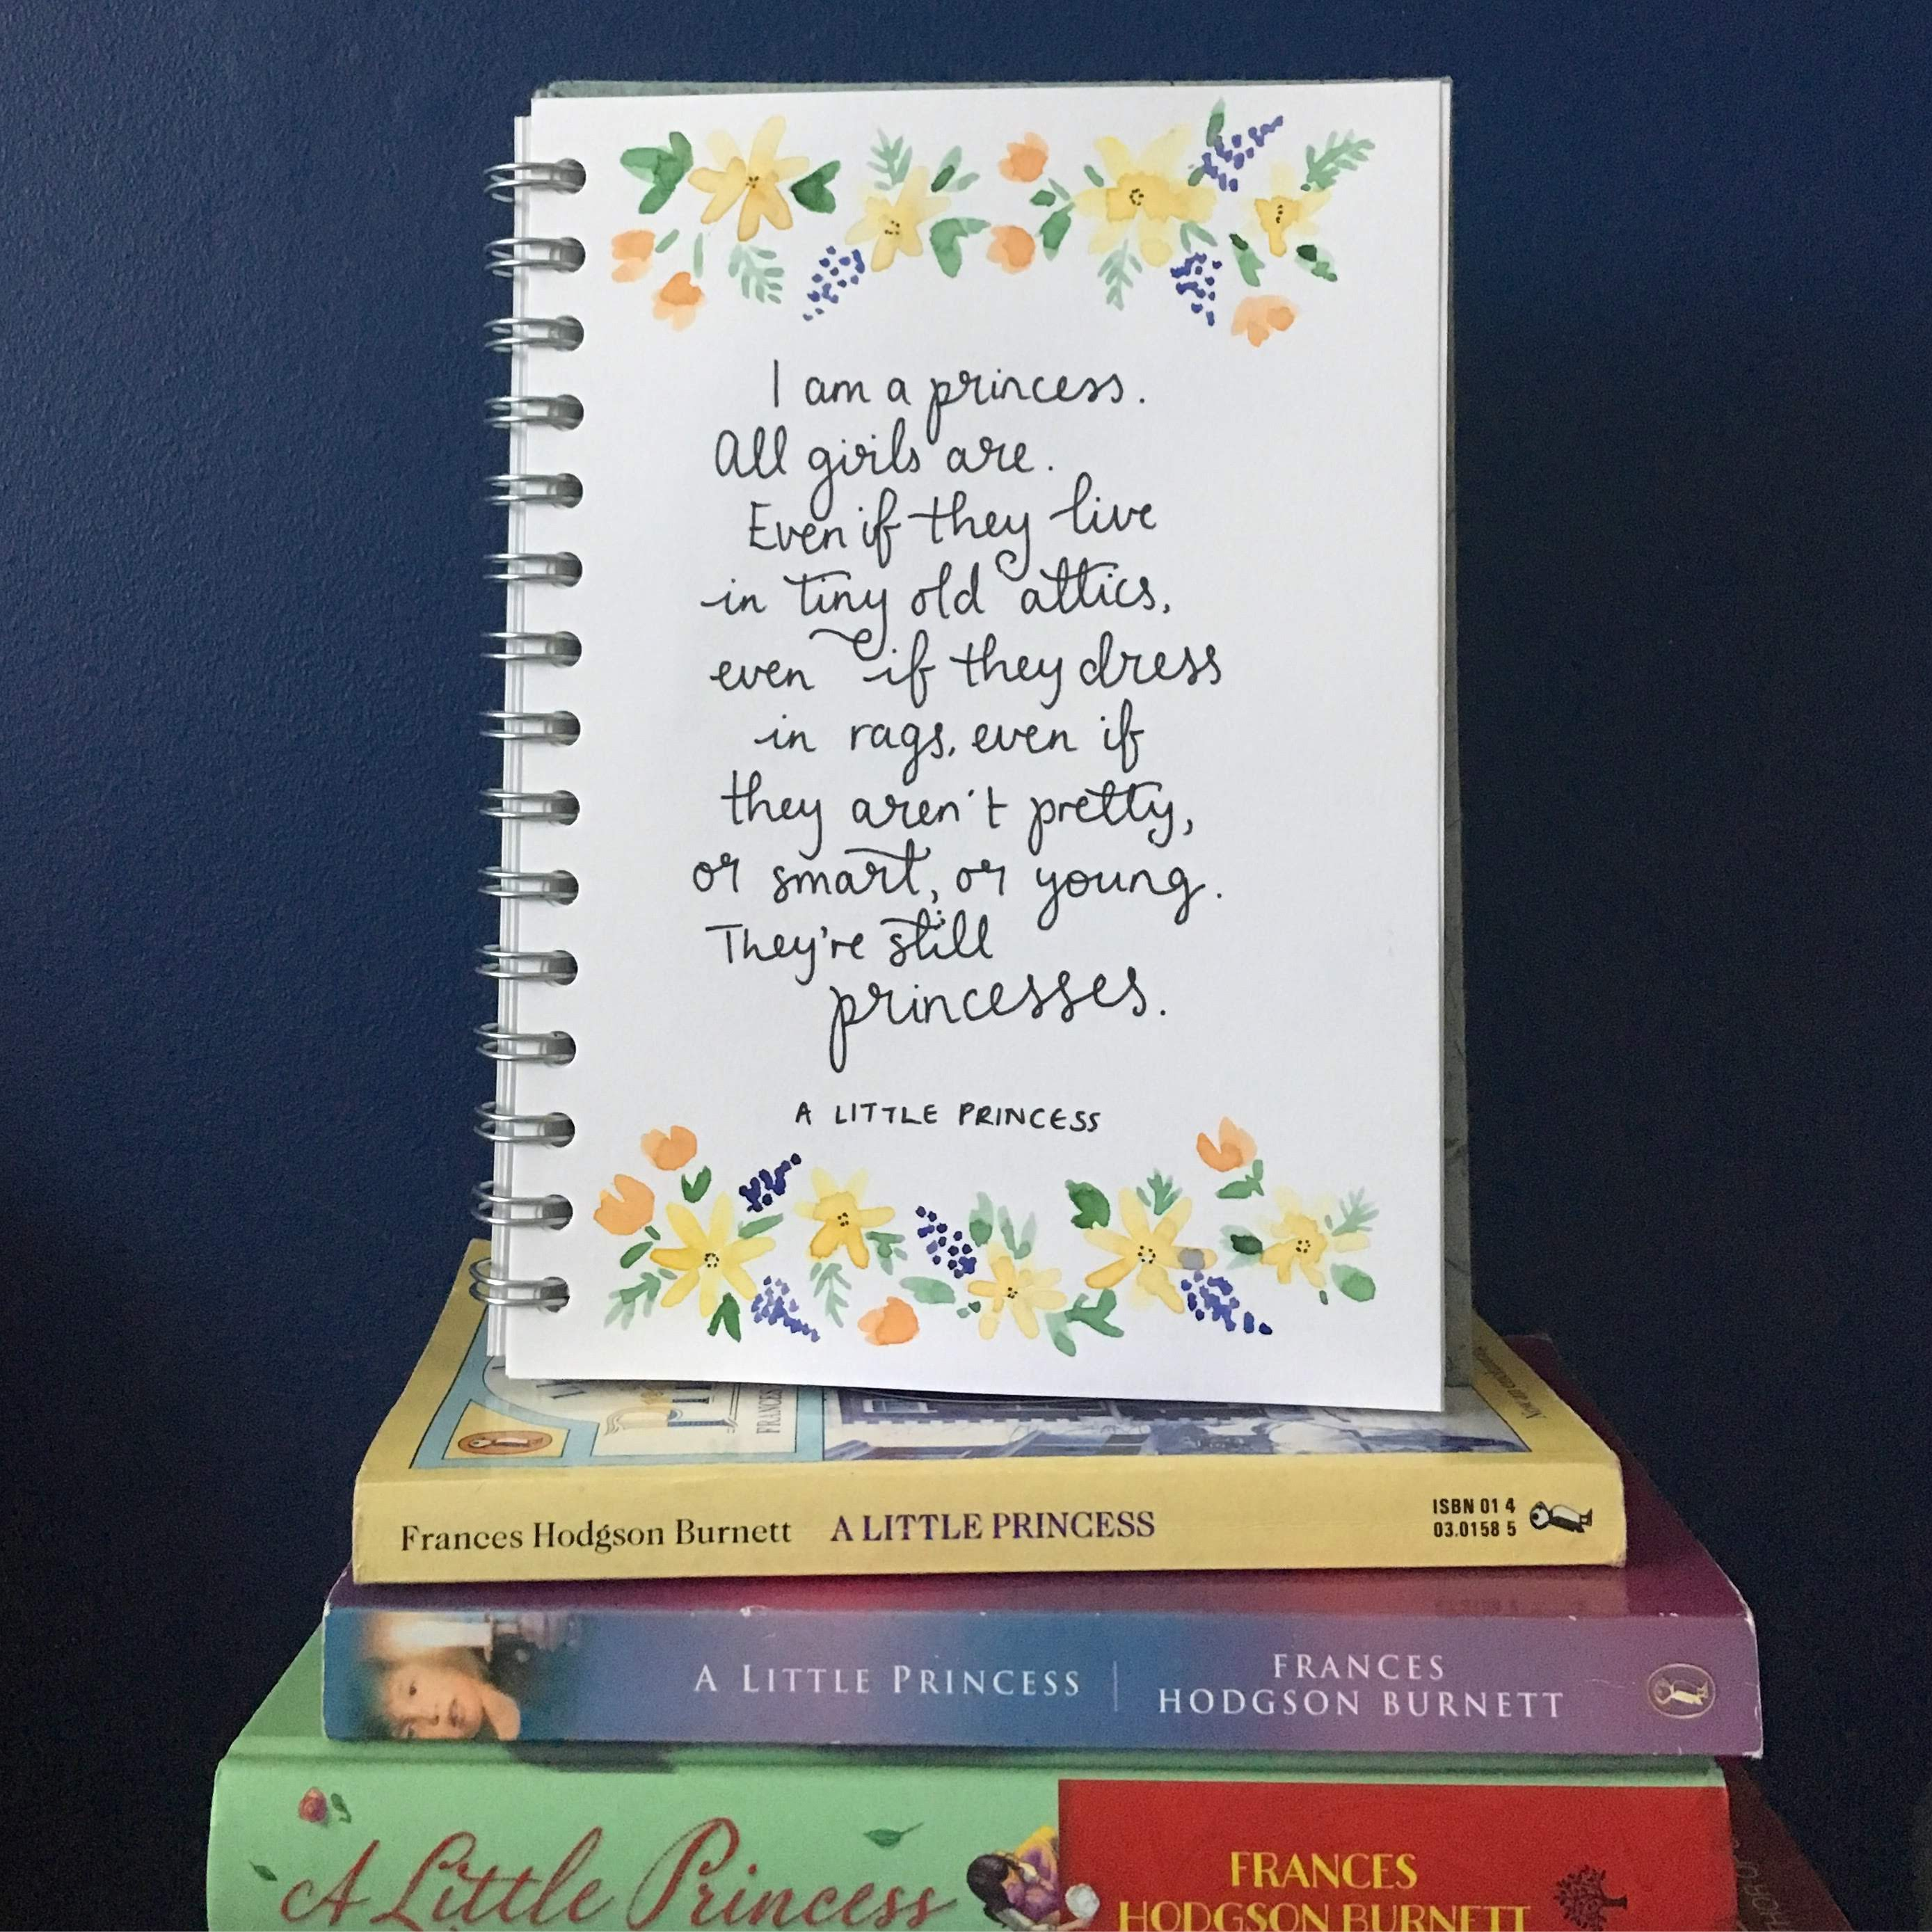 100 days of flowers and prose